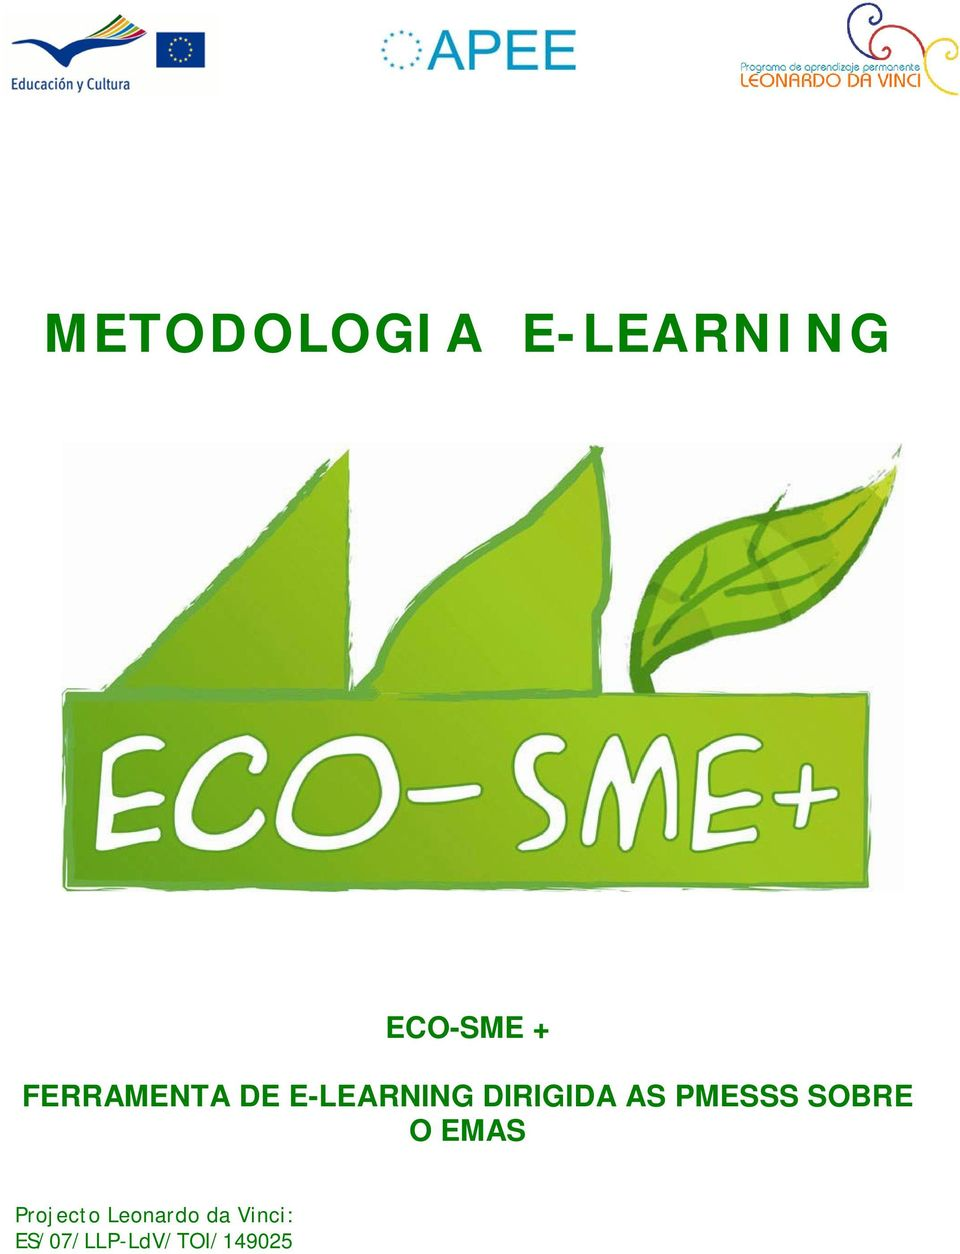 E-LEARNING DIRIGIDA AS